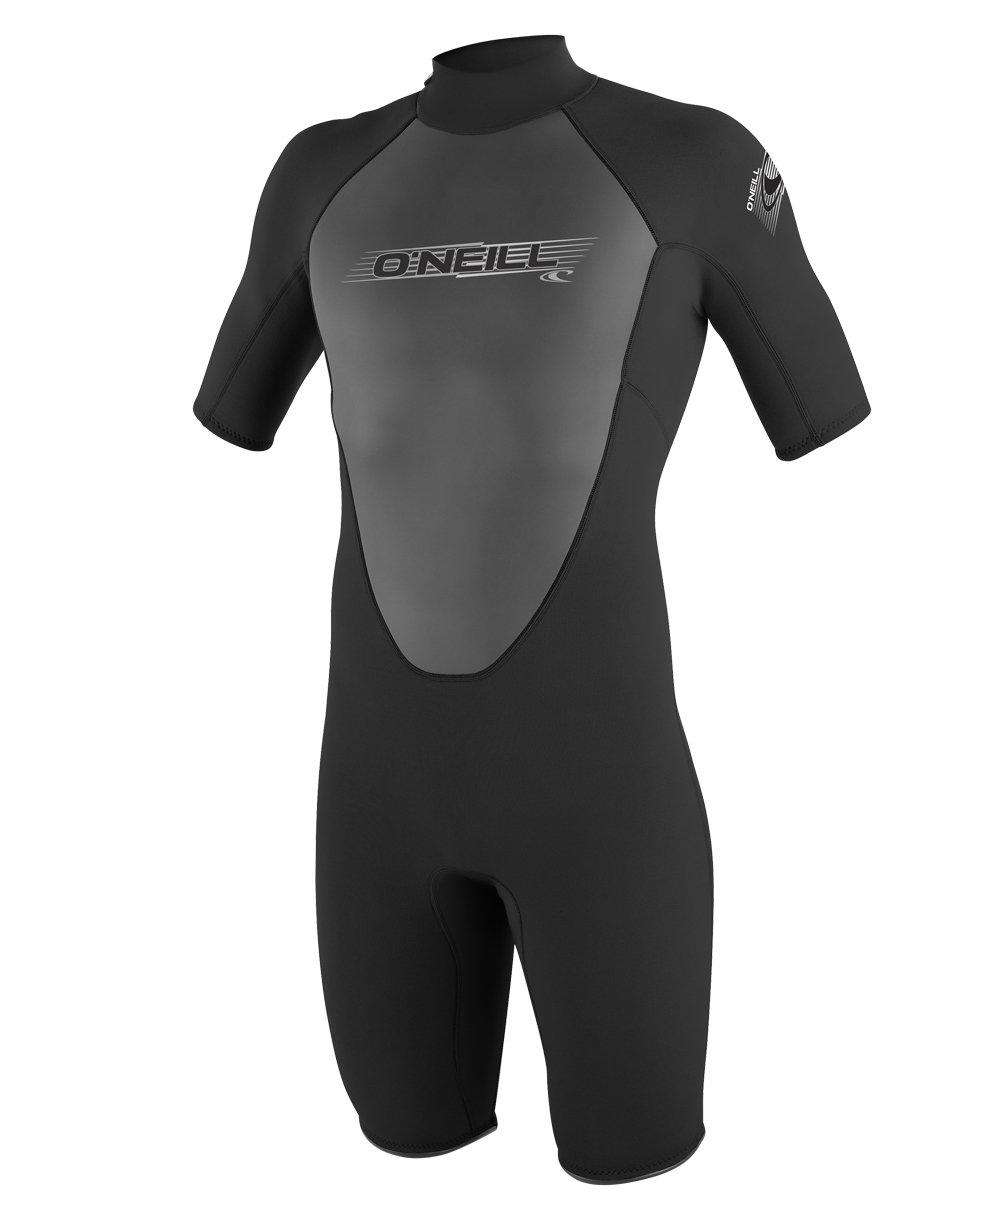 O'Neill Men's Reactor 2mm Back Zip Spring Wetsuit, Black, Small